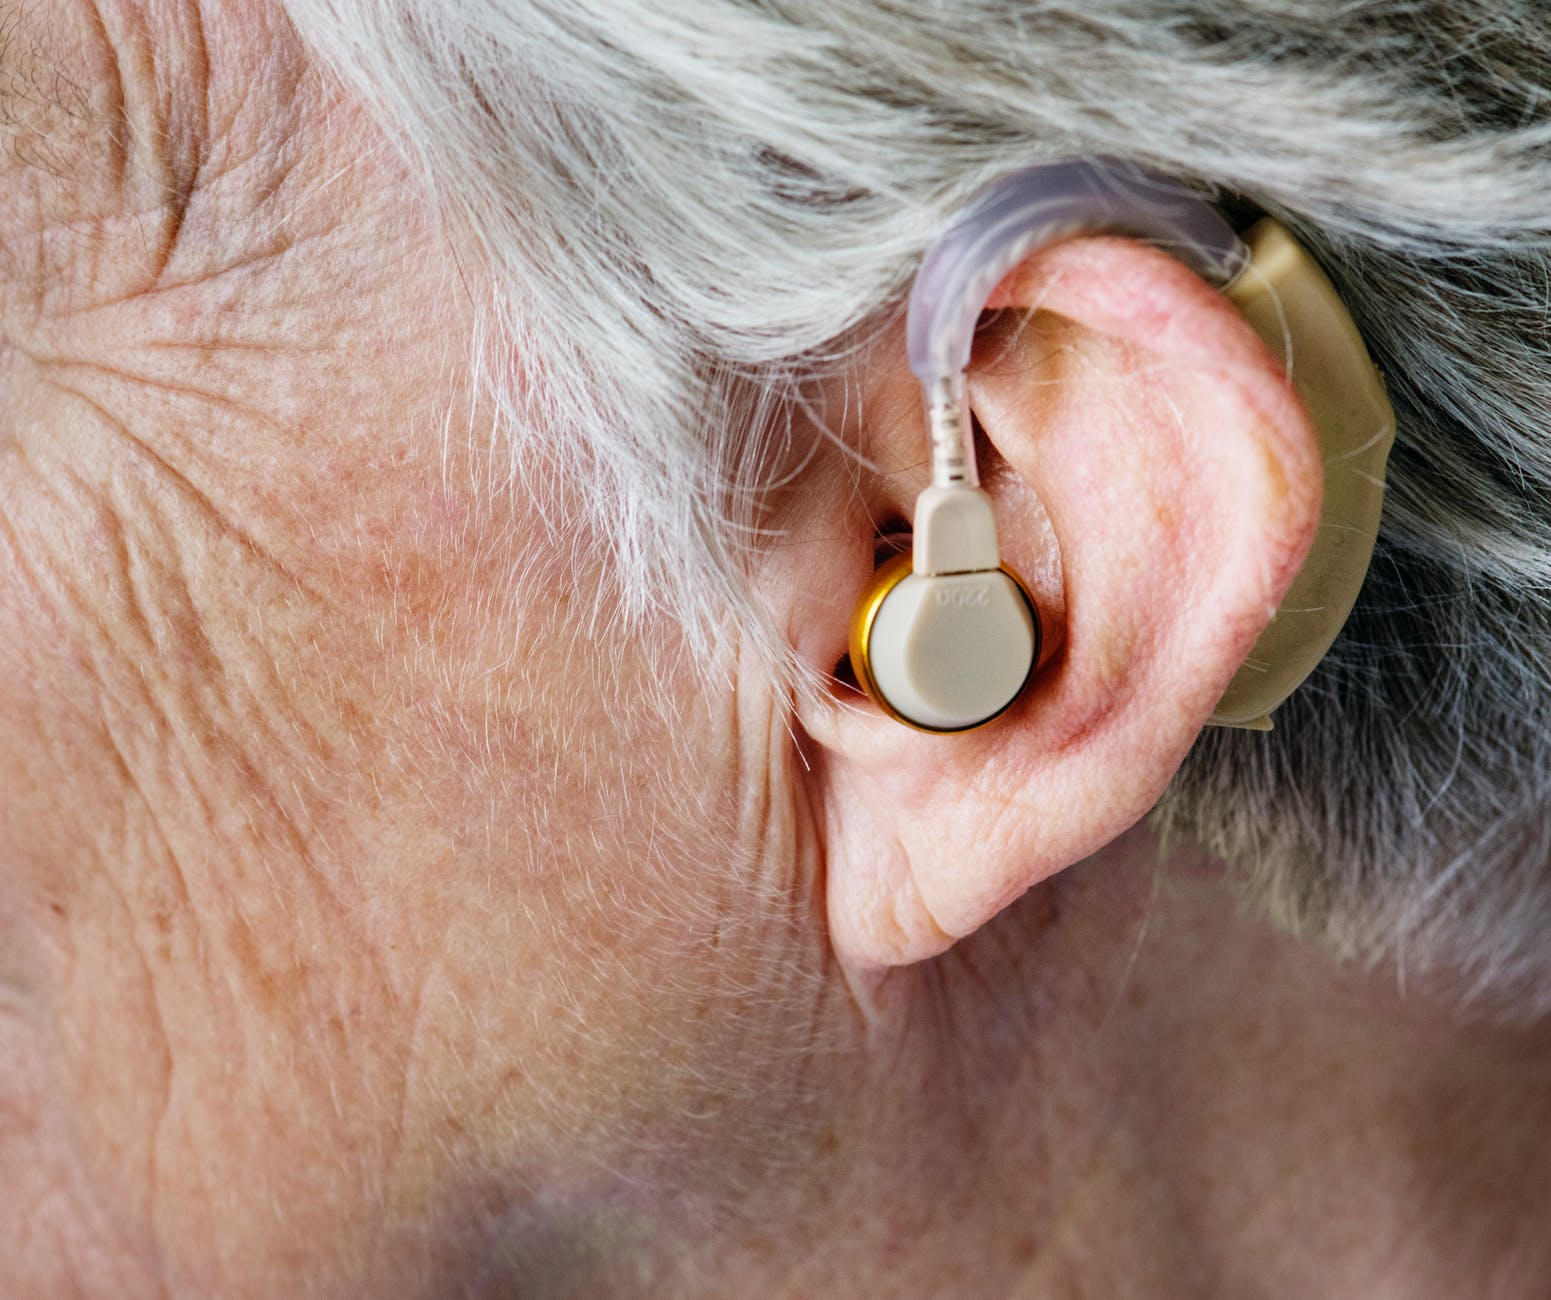 Picutre of a person with an earpiece that helps them hear